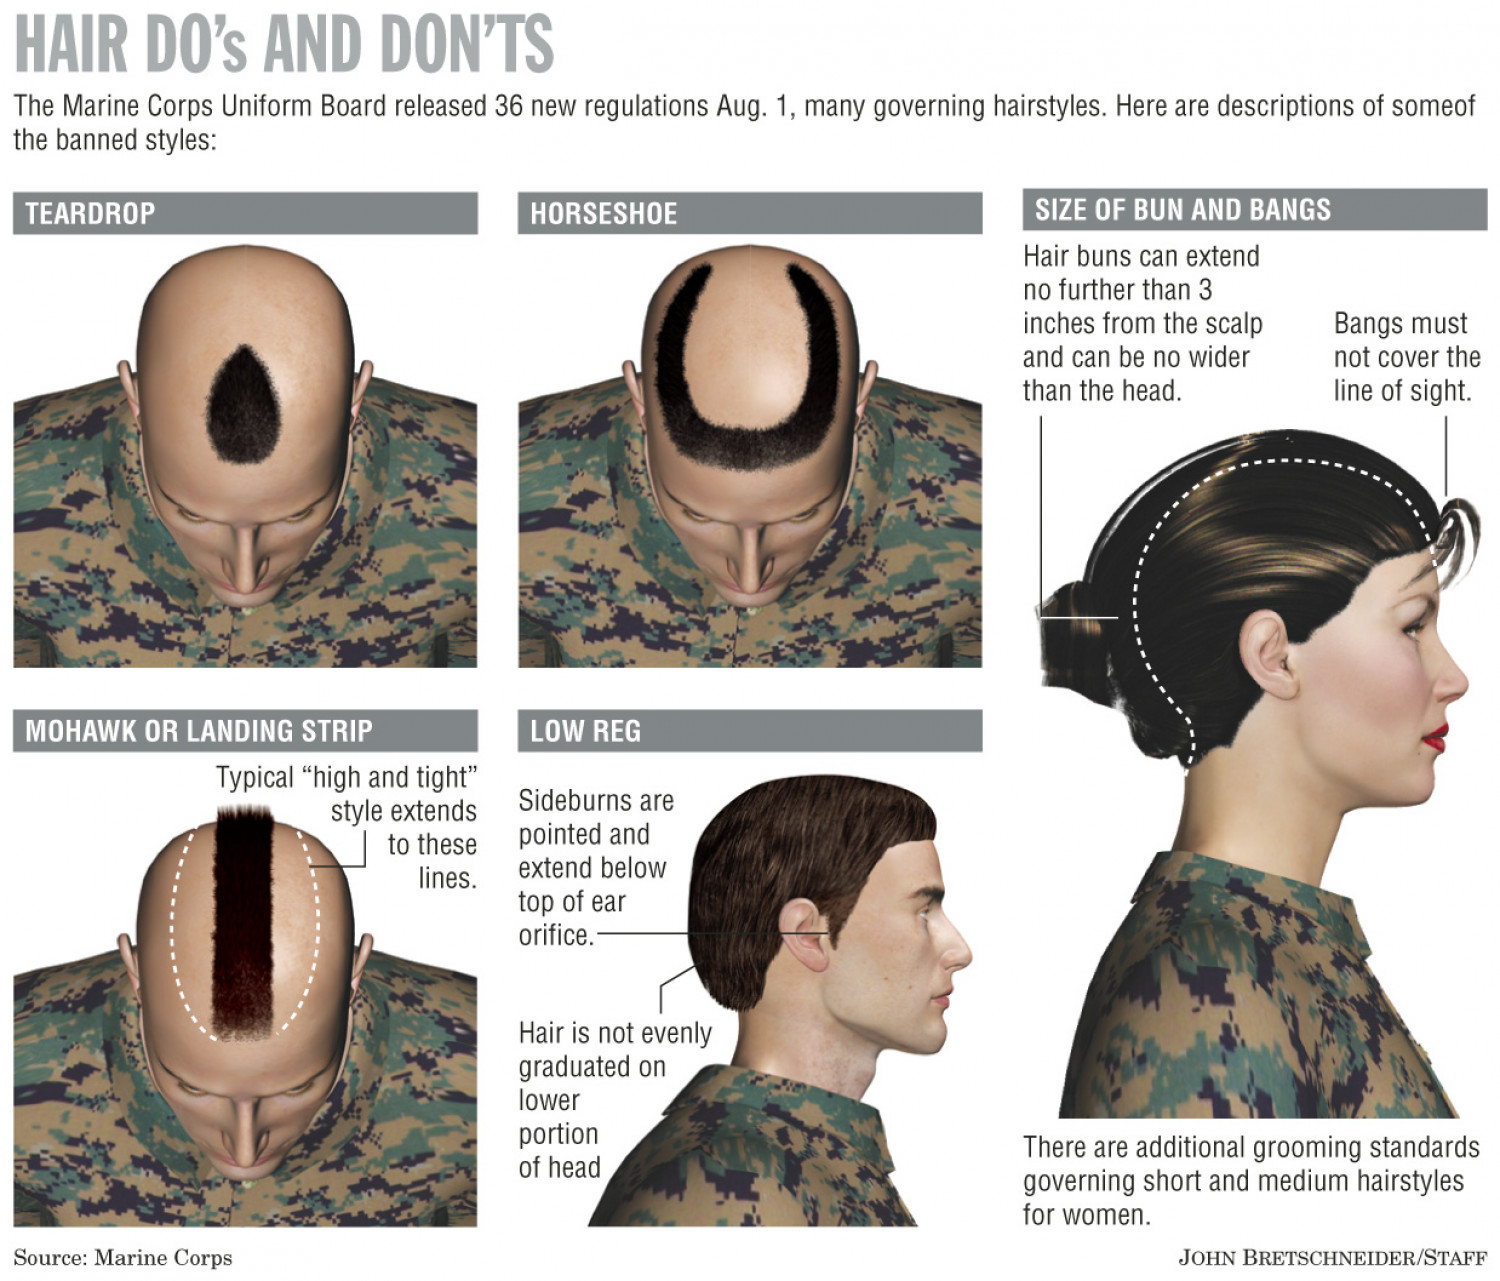 Hair Do's and Don'ts | Visual.ly